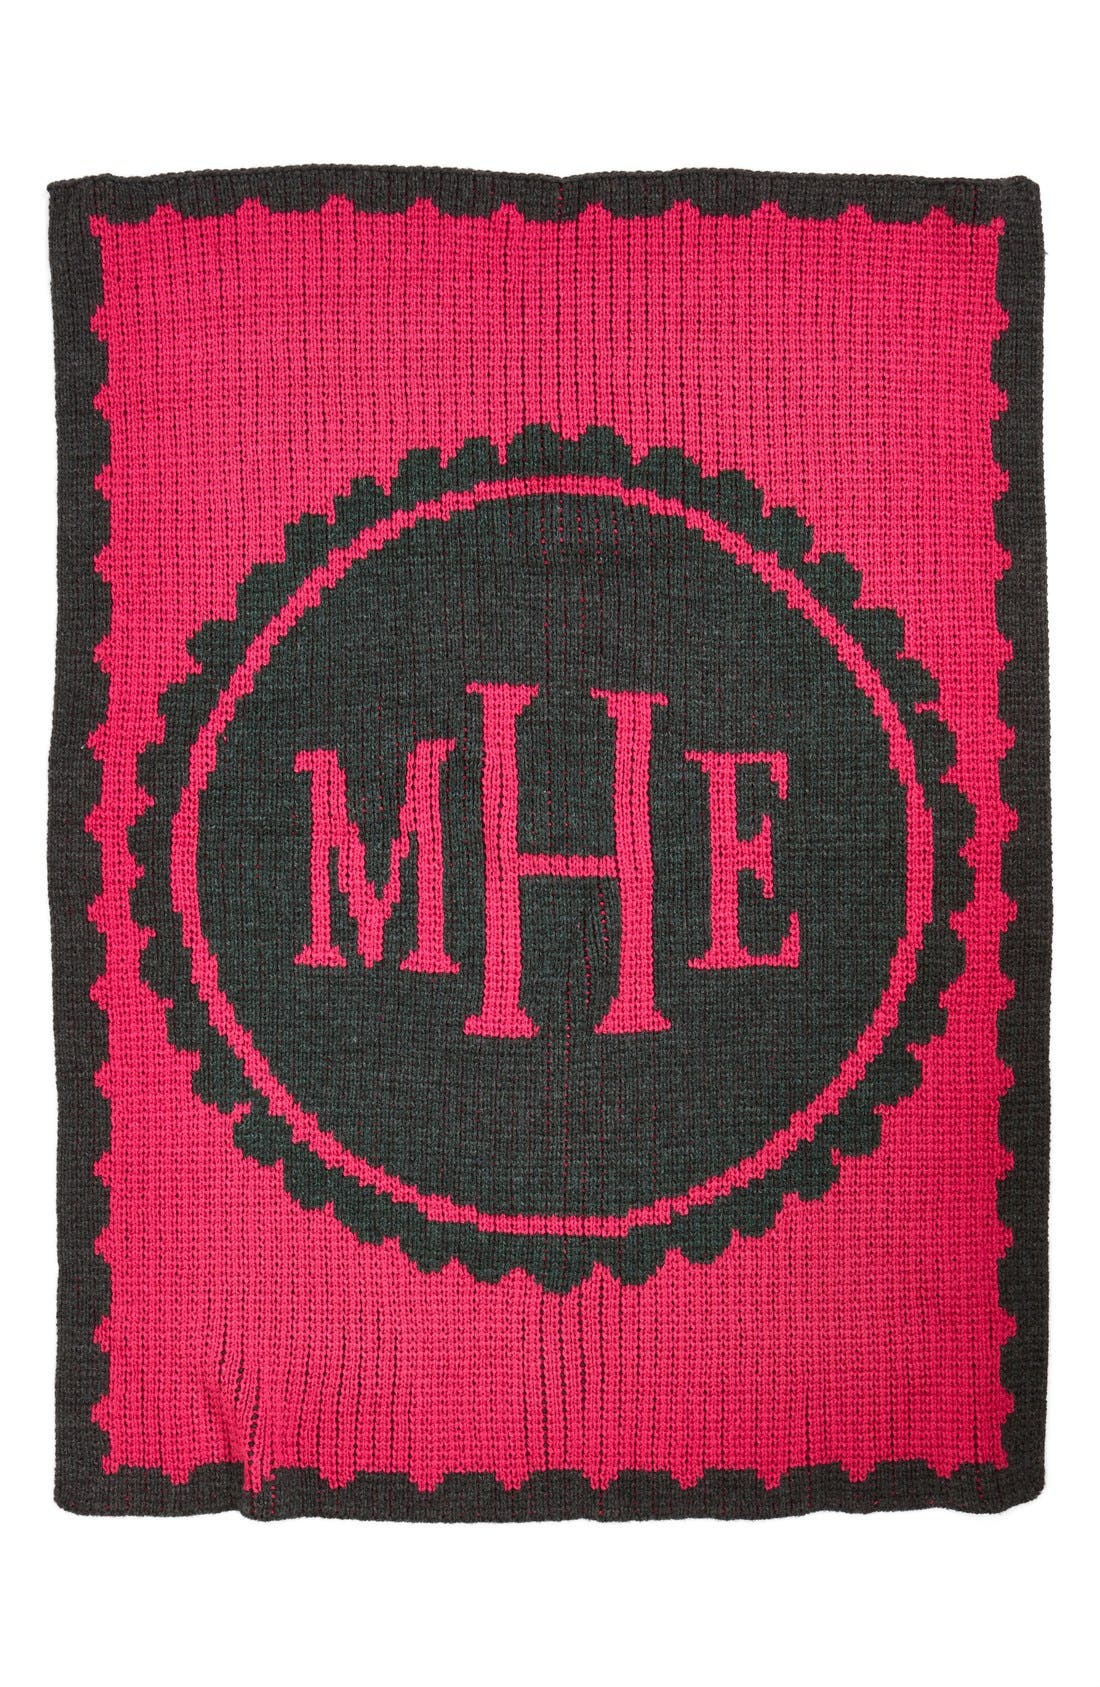 'Scalloped - Small' Personalized Blanket,                             Main thumbnail 1, color,                             CHARCOAL GREY/ FUSCHIA